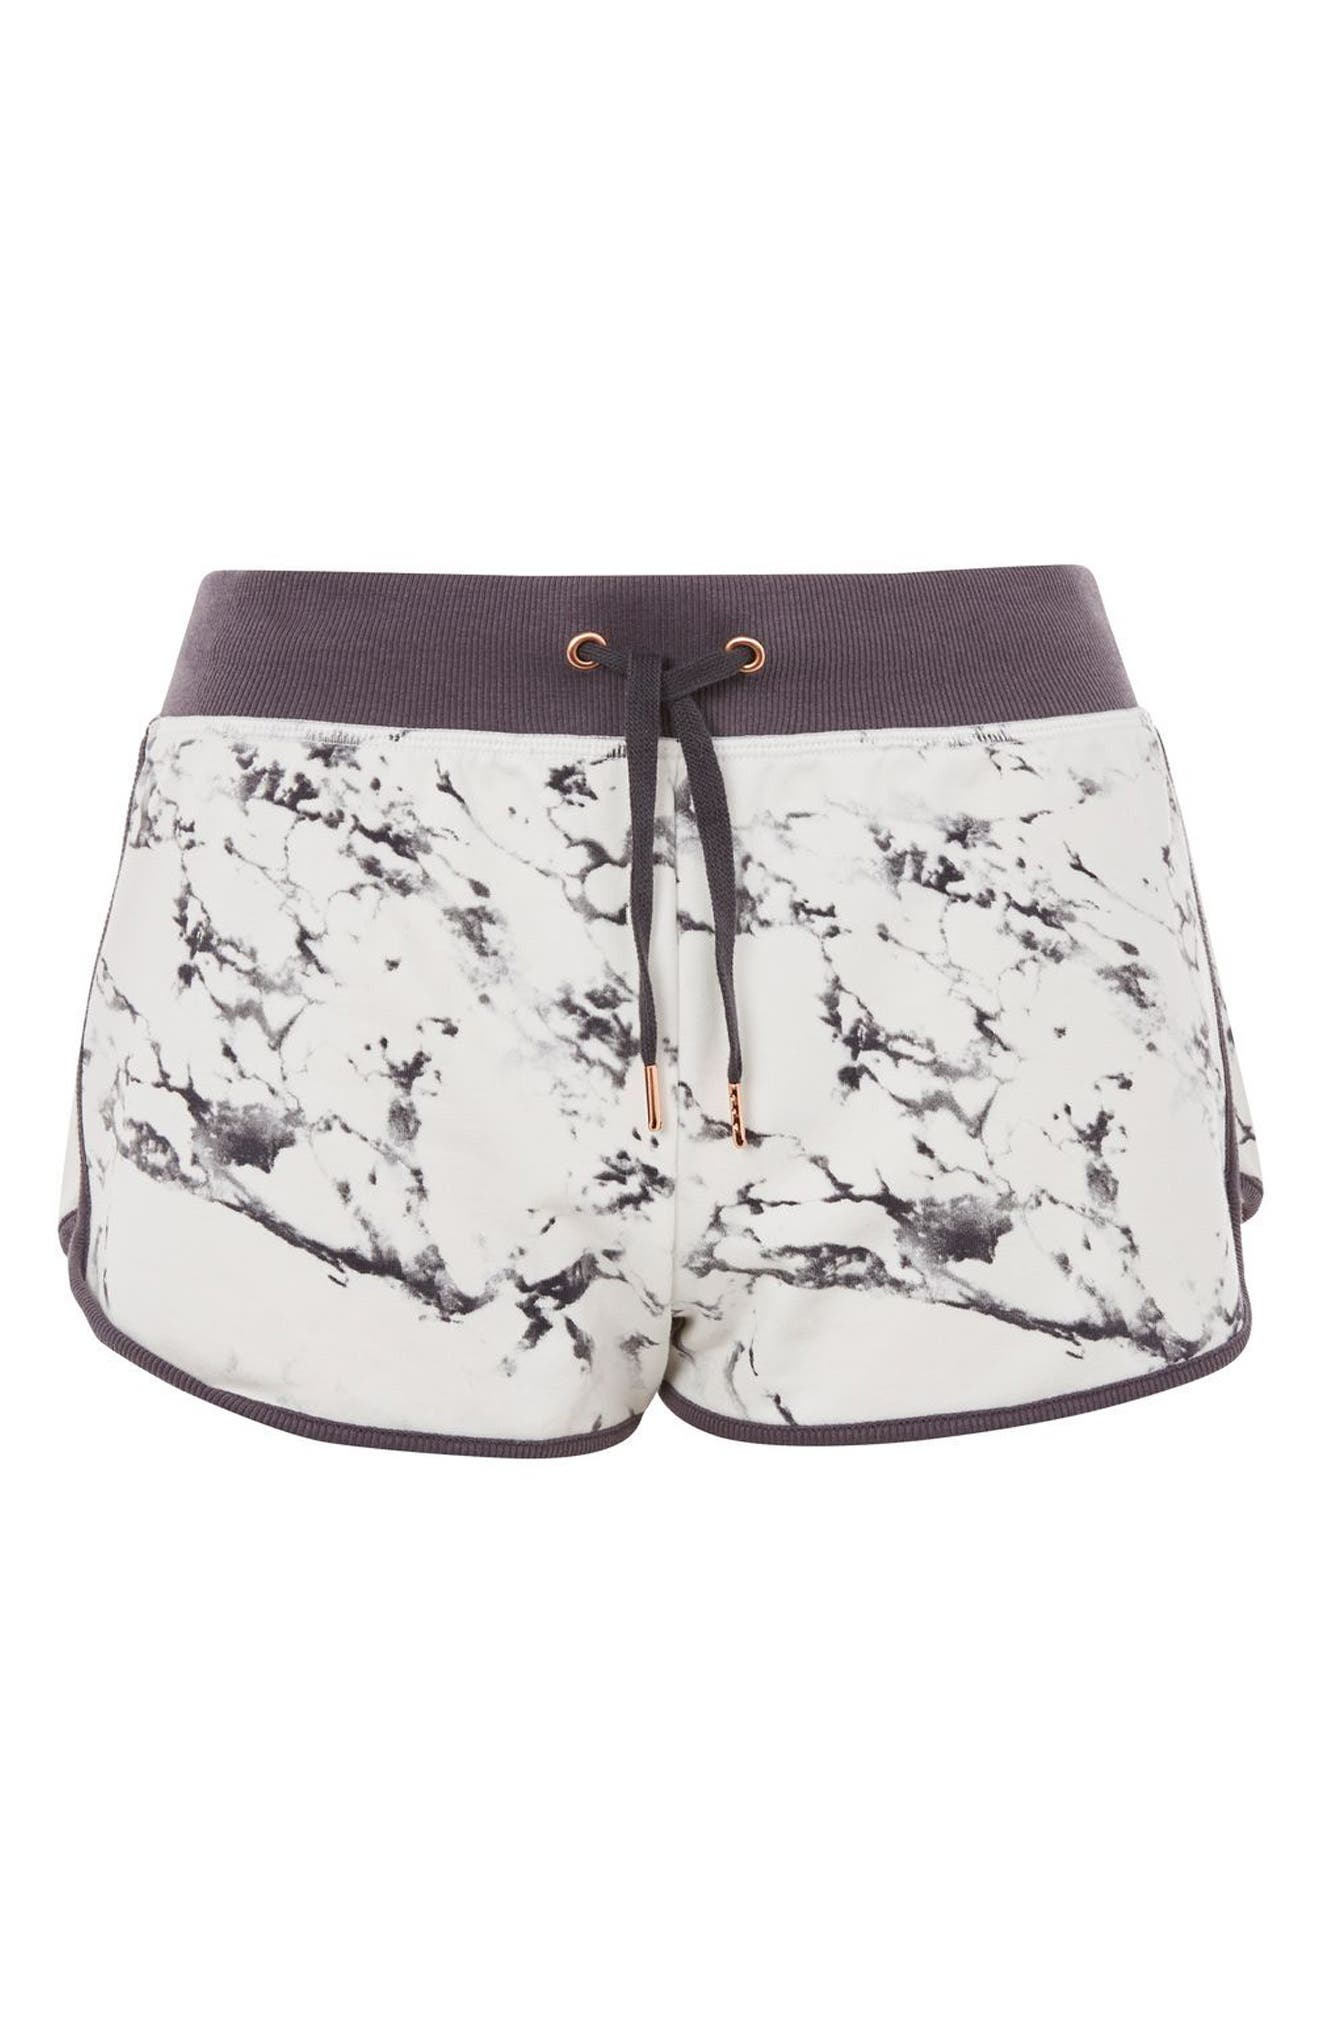 Marble Print Shorts,                             Alternate thumbnail 3, color,                             020